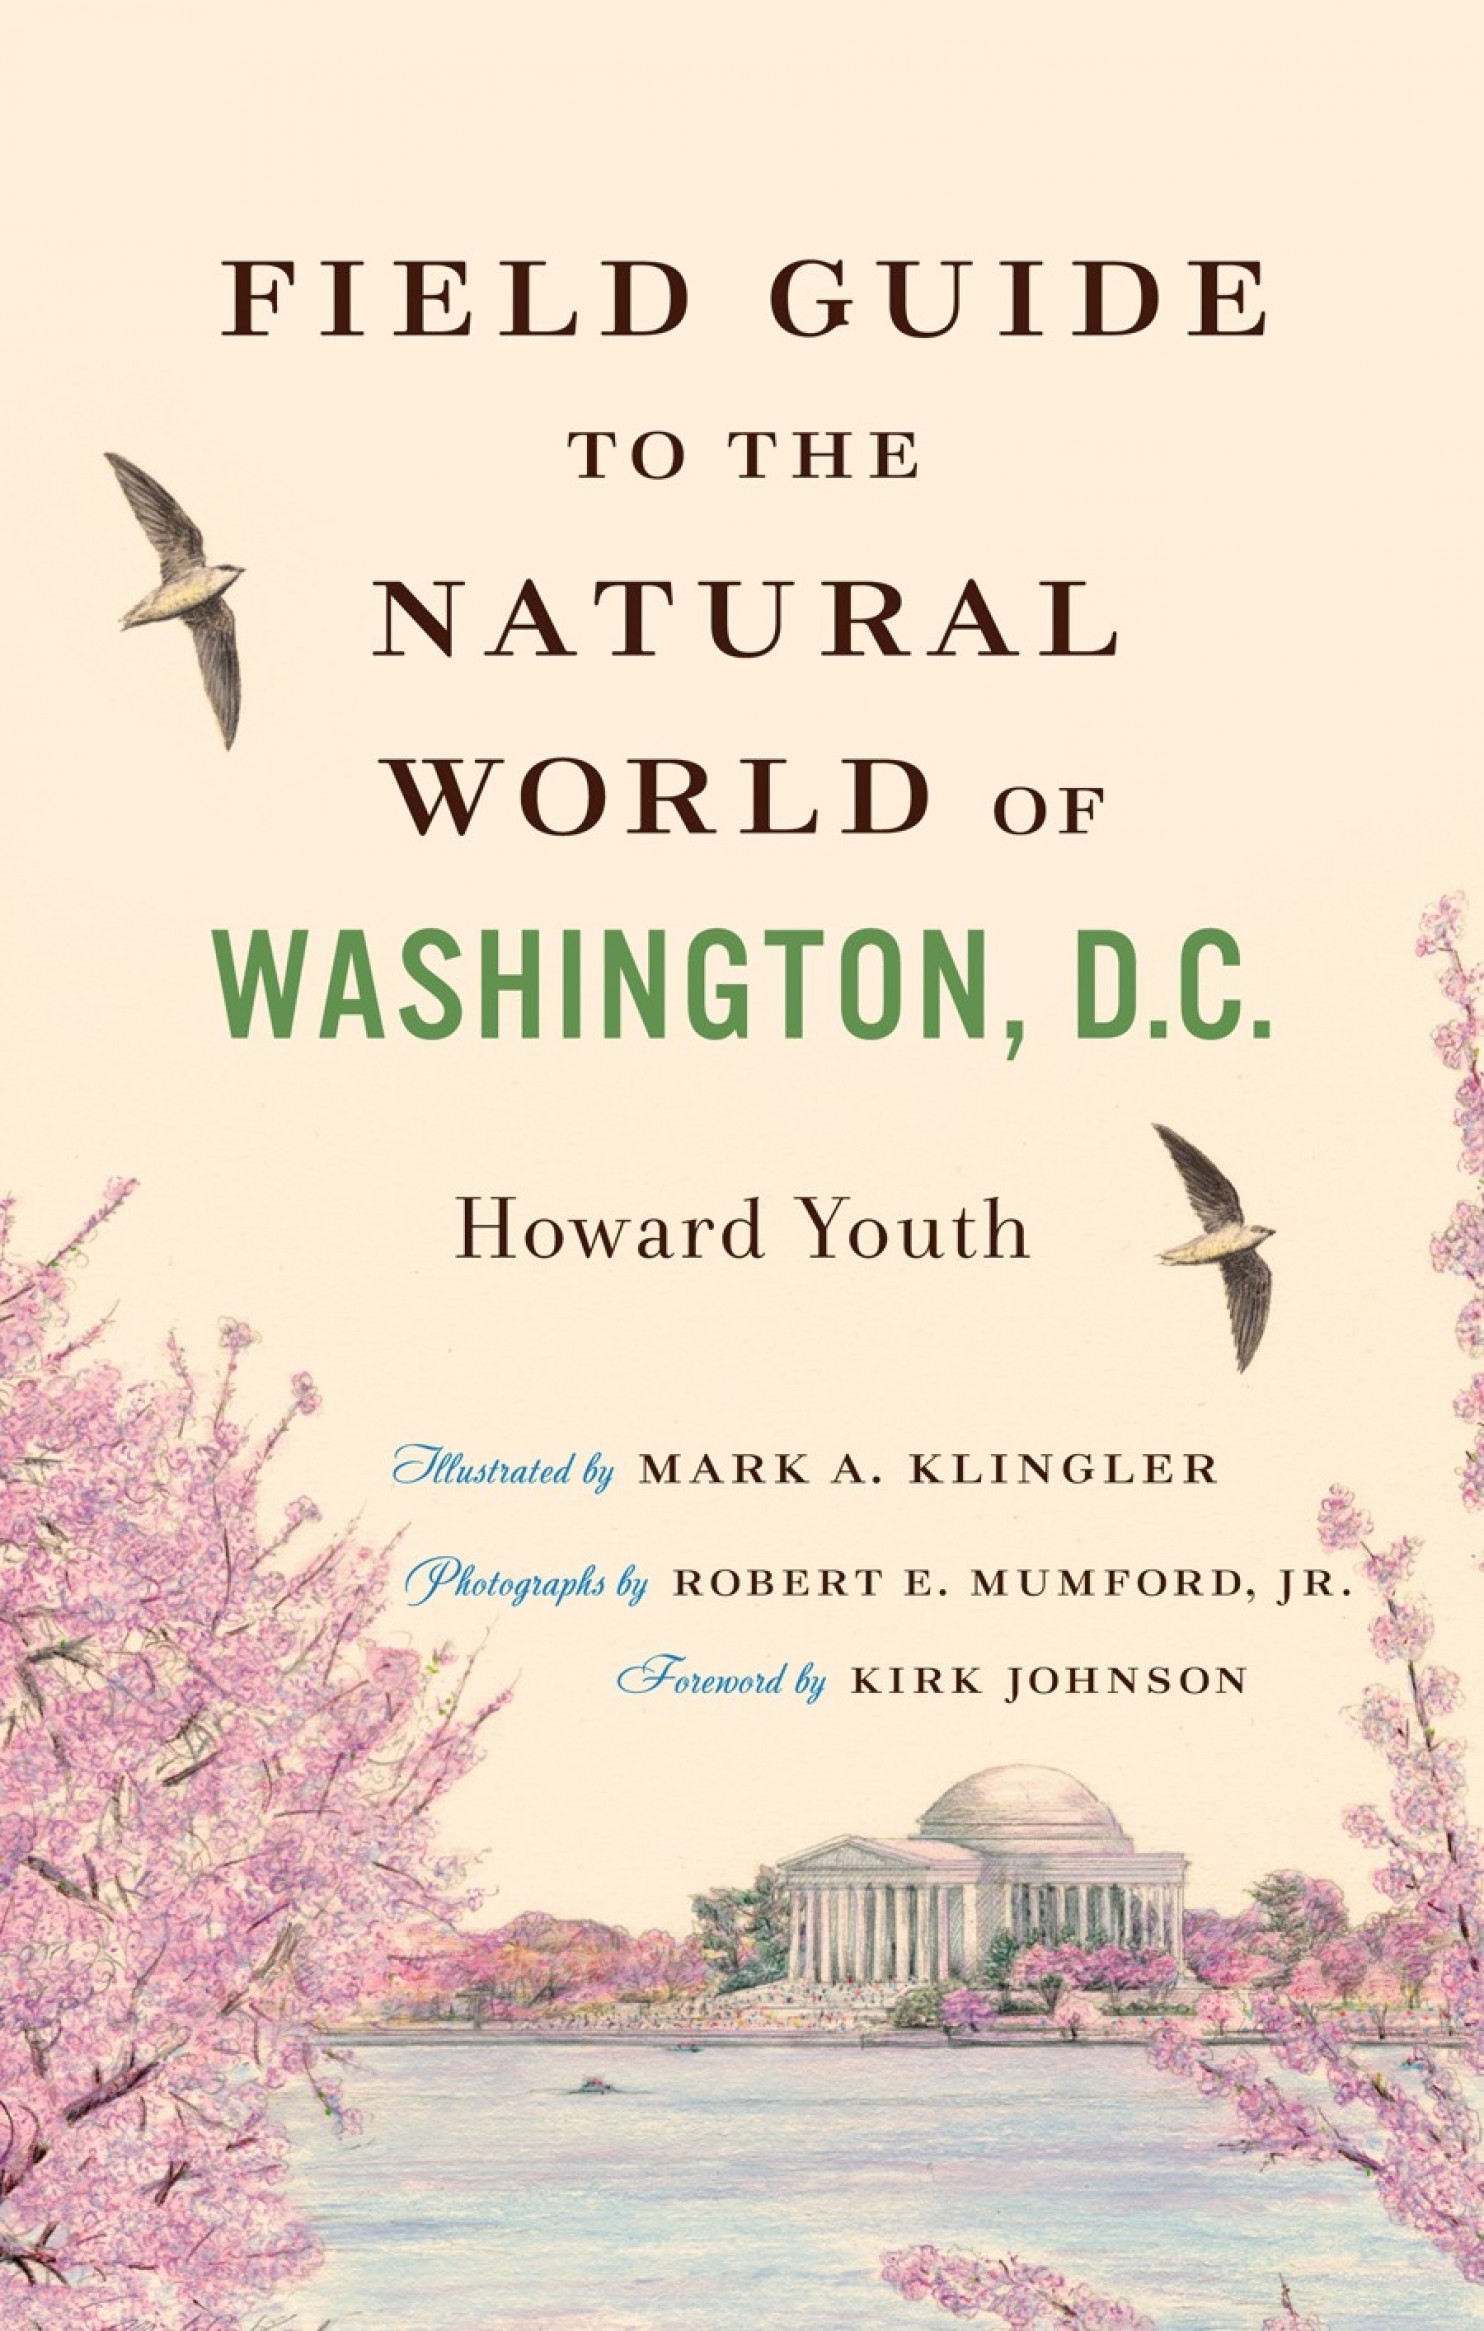 Field Guide to the Natural World